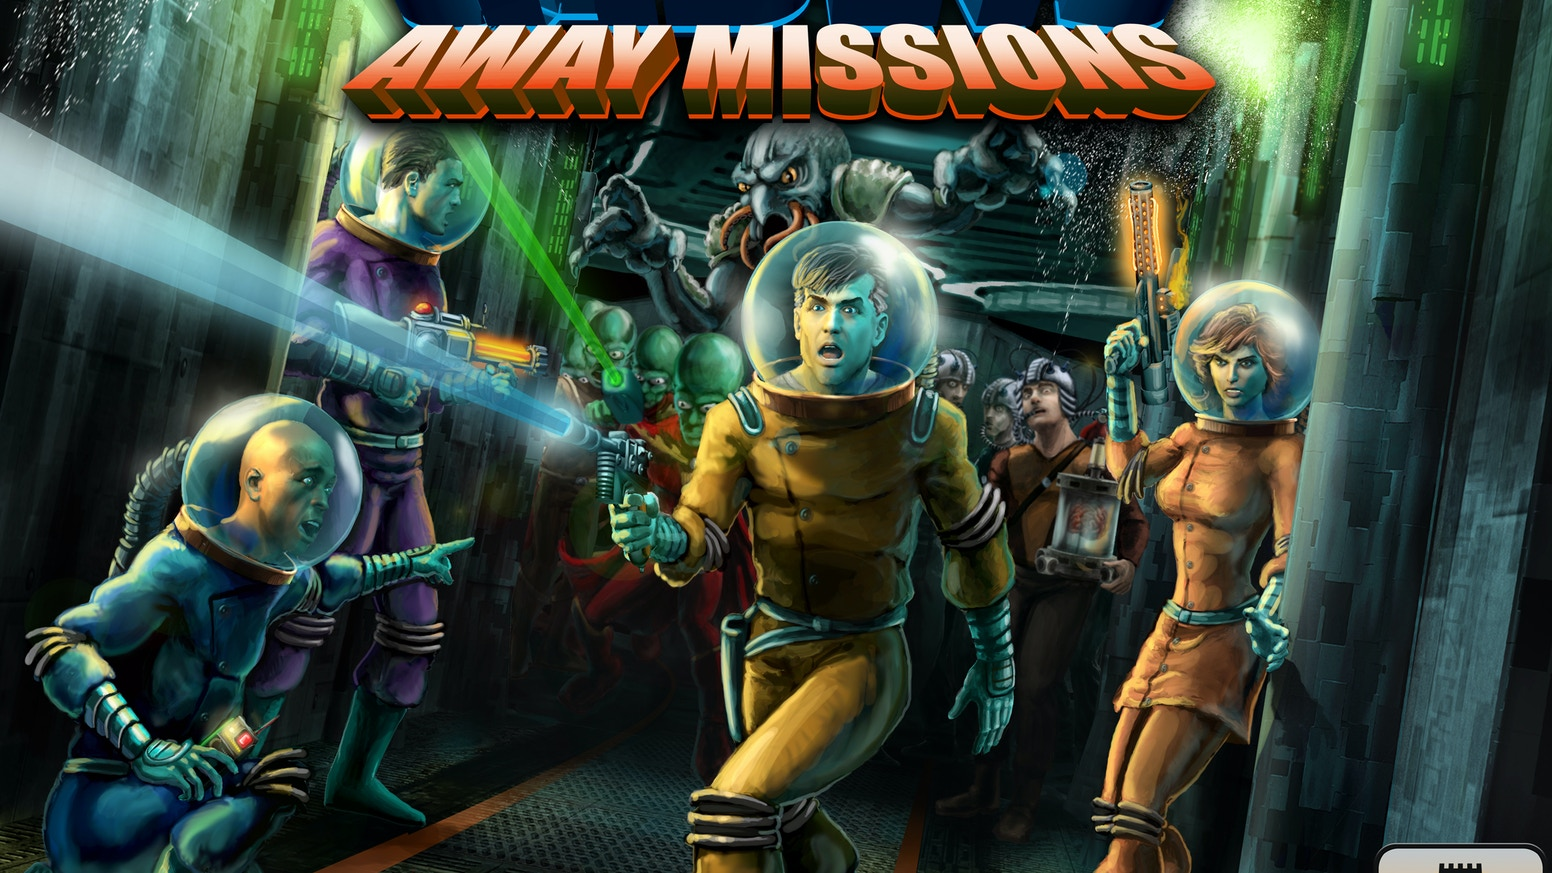 A cooperative, mission-based, tactical action game, set in the Golden Age of Sci-Fi. In this 3rd standalone game in the Space Cadets line, players take on the roles of Human spacemen, who explore UFOs, acquire alien tech and fight hostile Aliens.